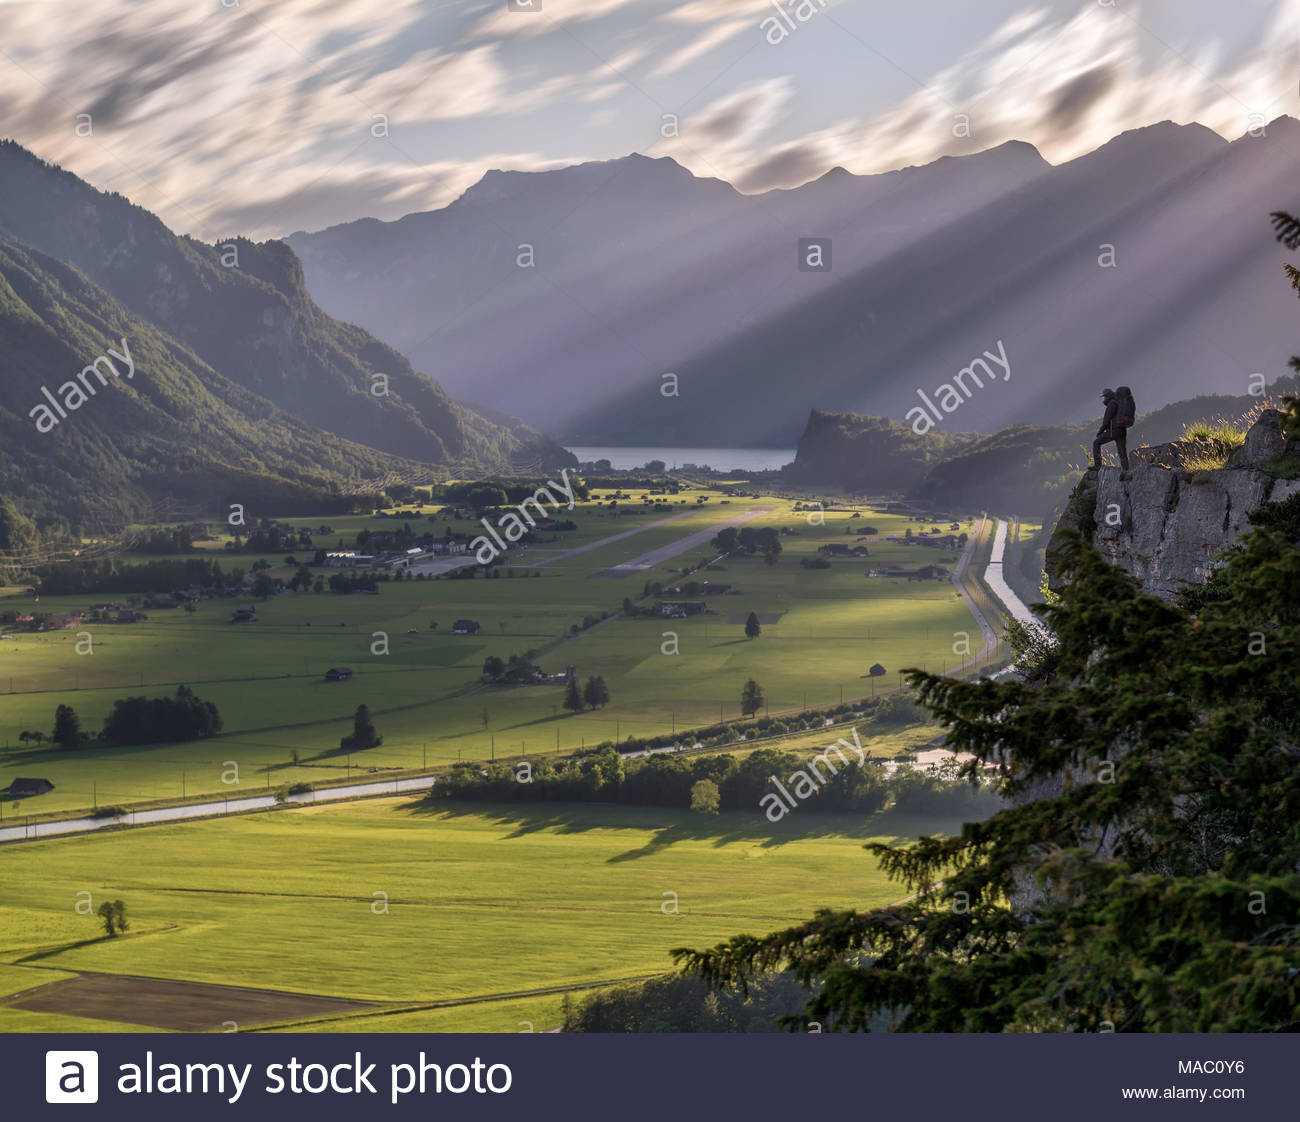 alpinist / adventurer silhouette standing on cliff overlooking green swiss alps valley, sunrays shining from the mountain peaks illuminating the grass - Stock Image